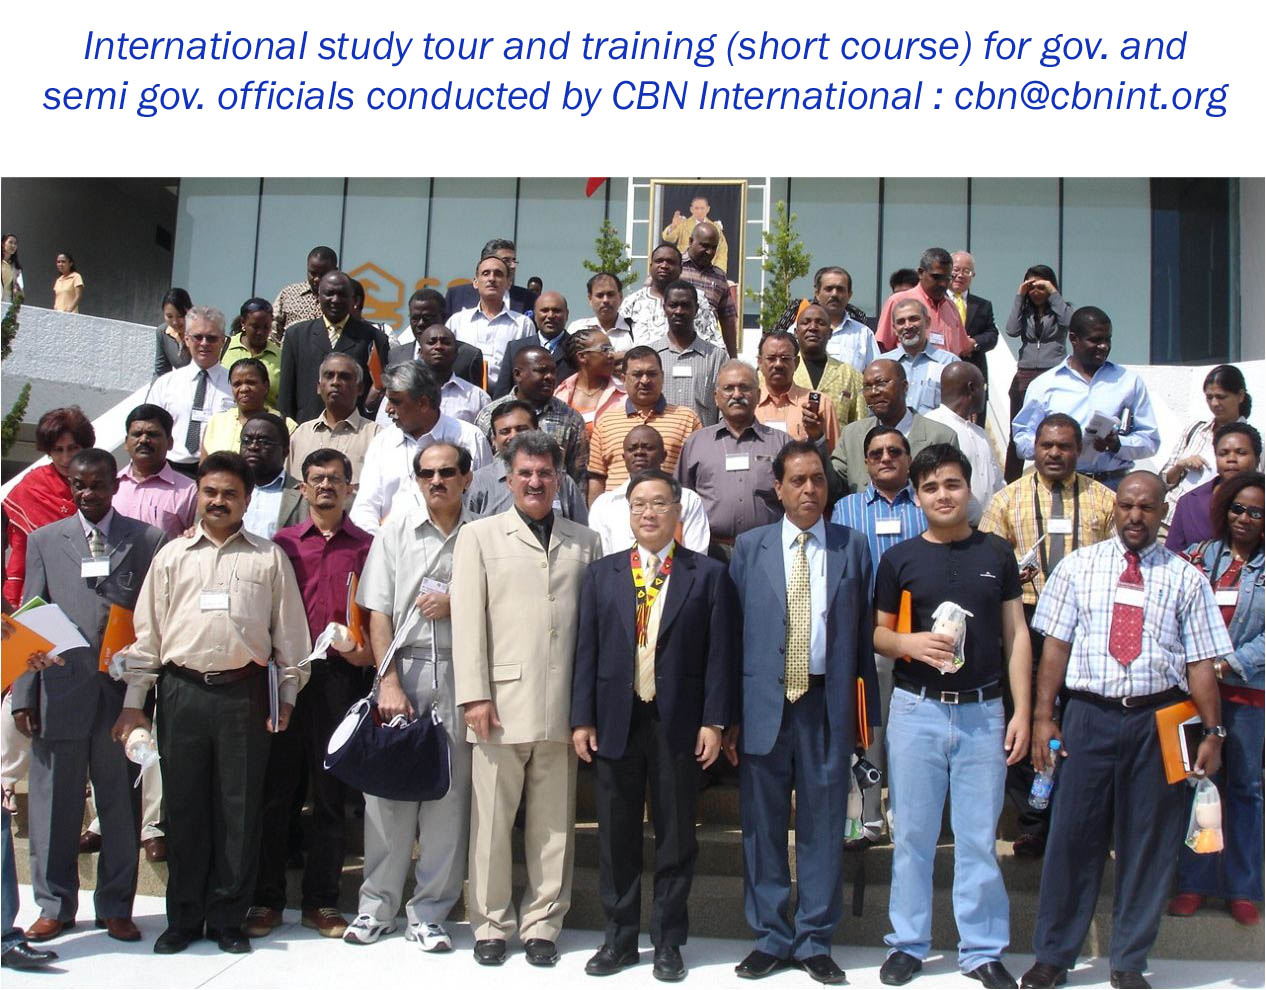 A group of participants during a CBN international training and study tour workshop held in Bangkok, Thailand; short course on Good Governance series.